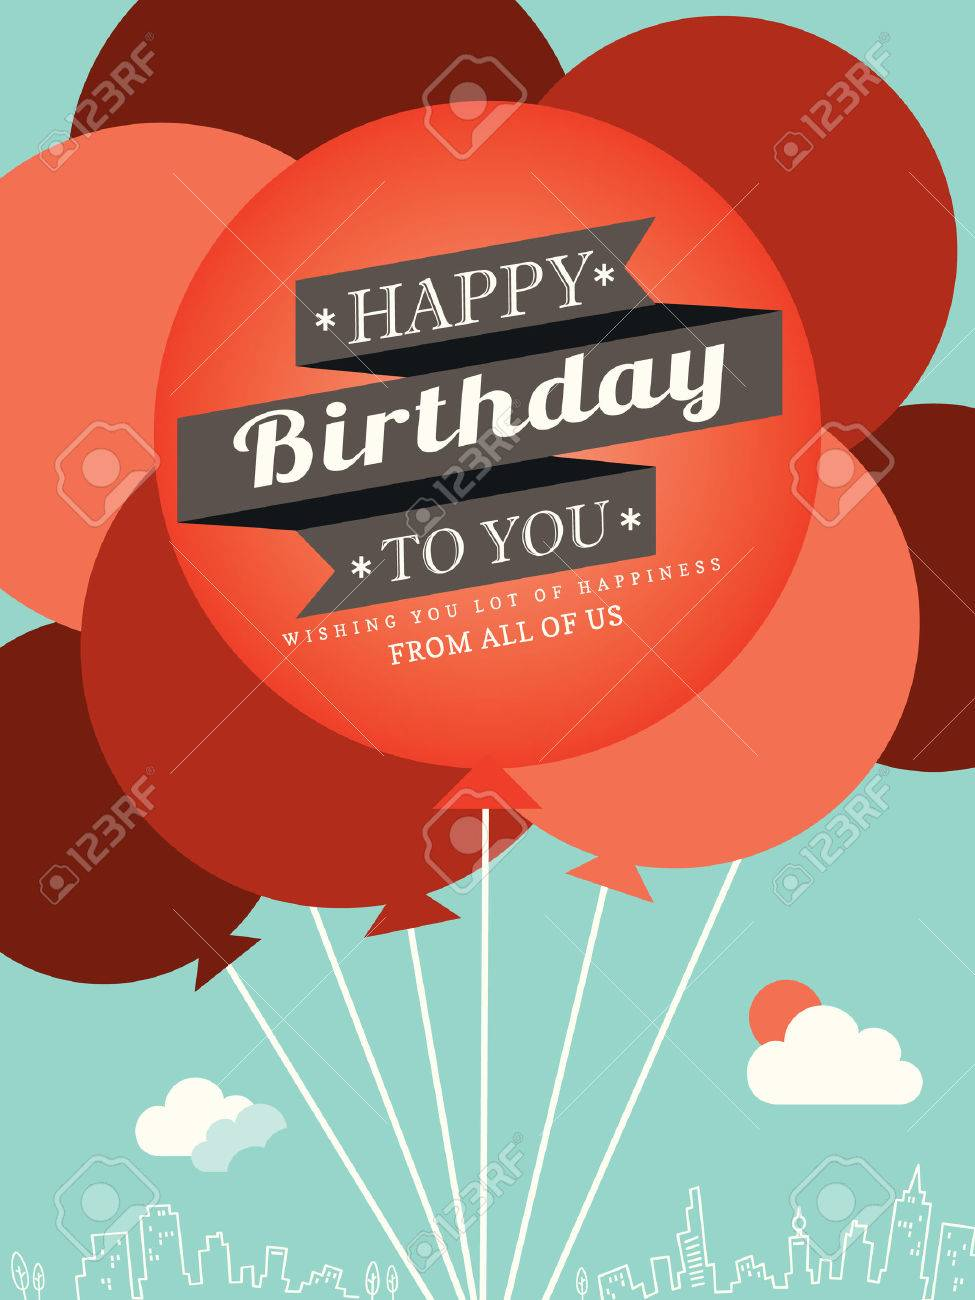 birthday card design template ; 25948117-happy-birthday-card-design-template-balloon-illustration